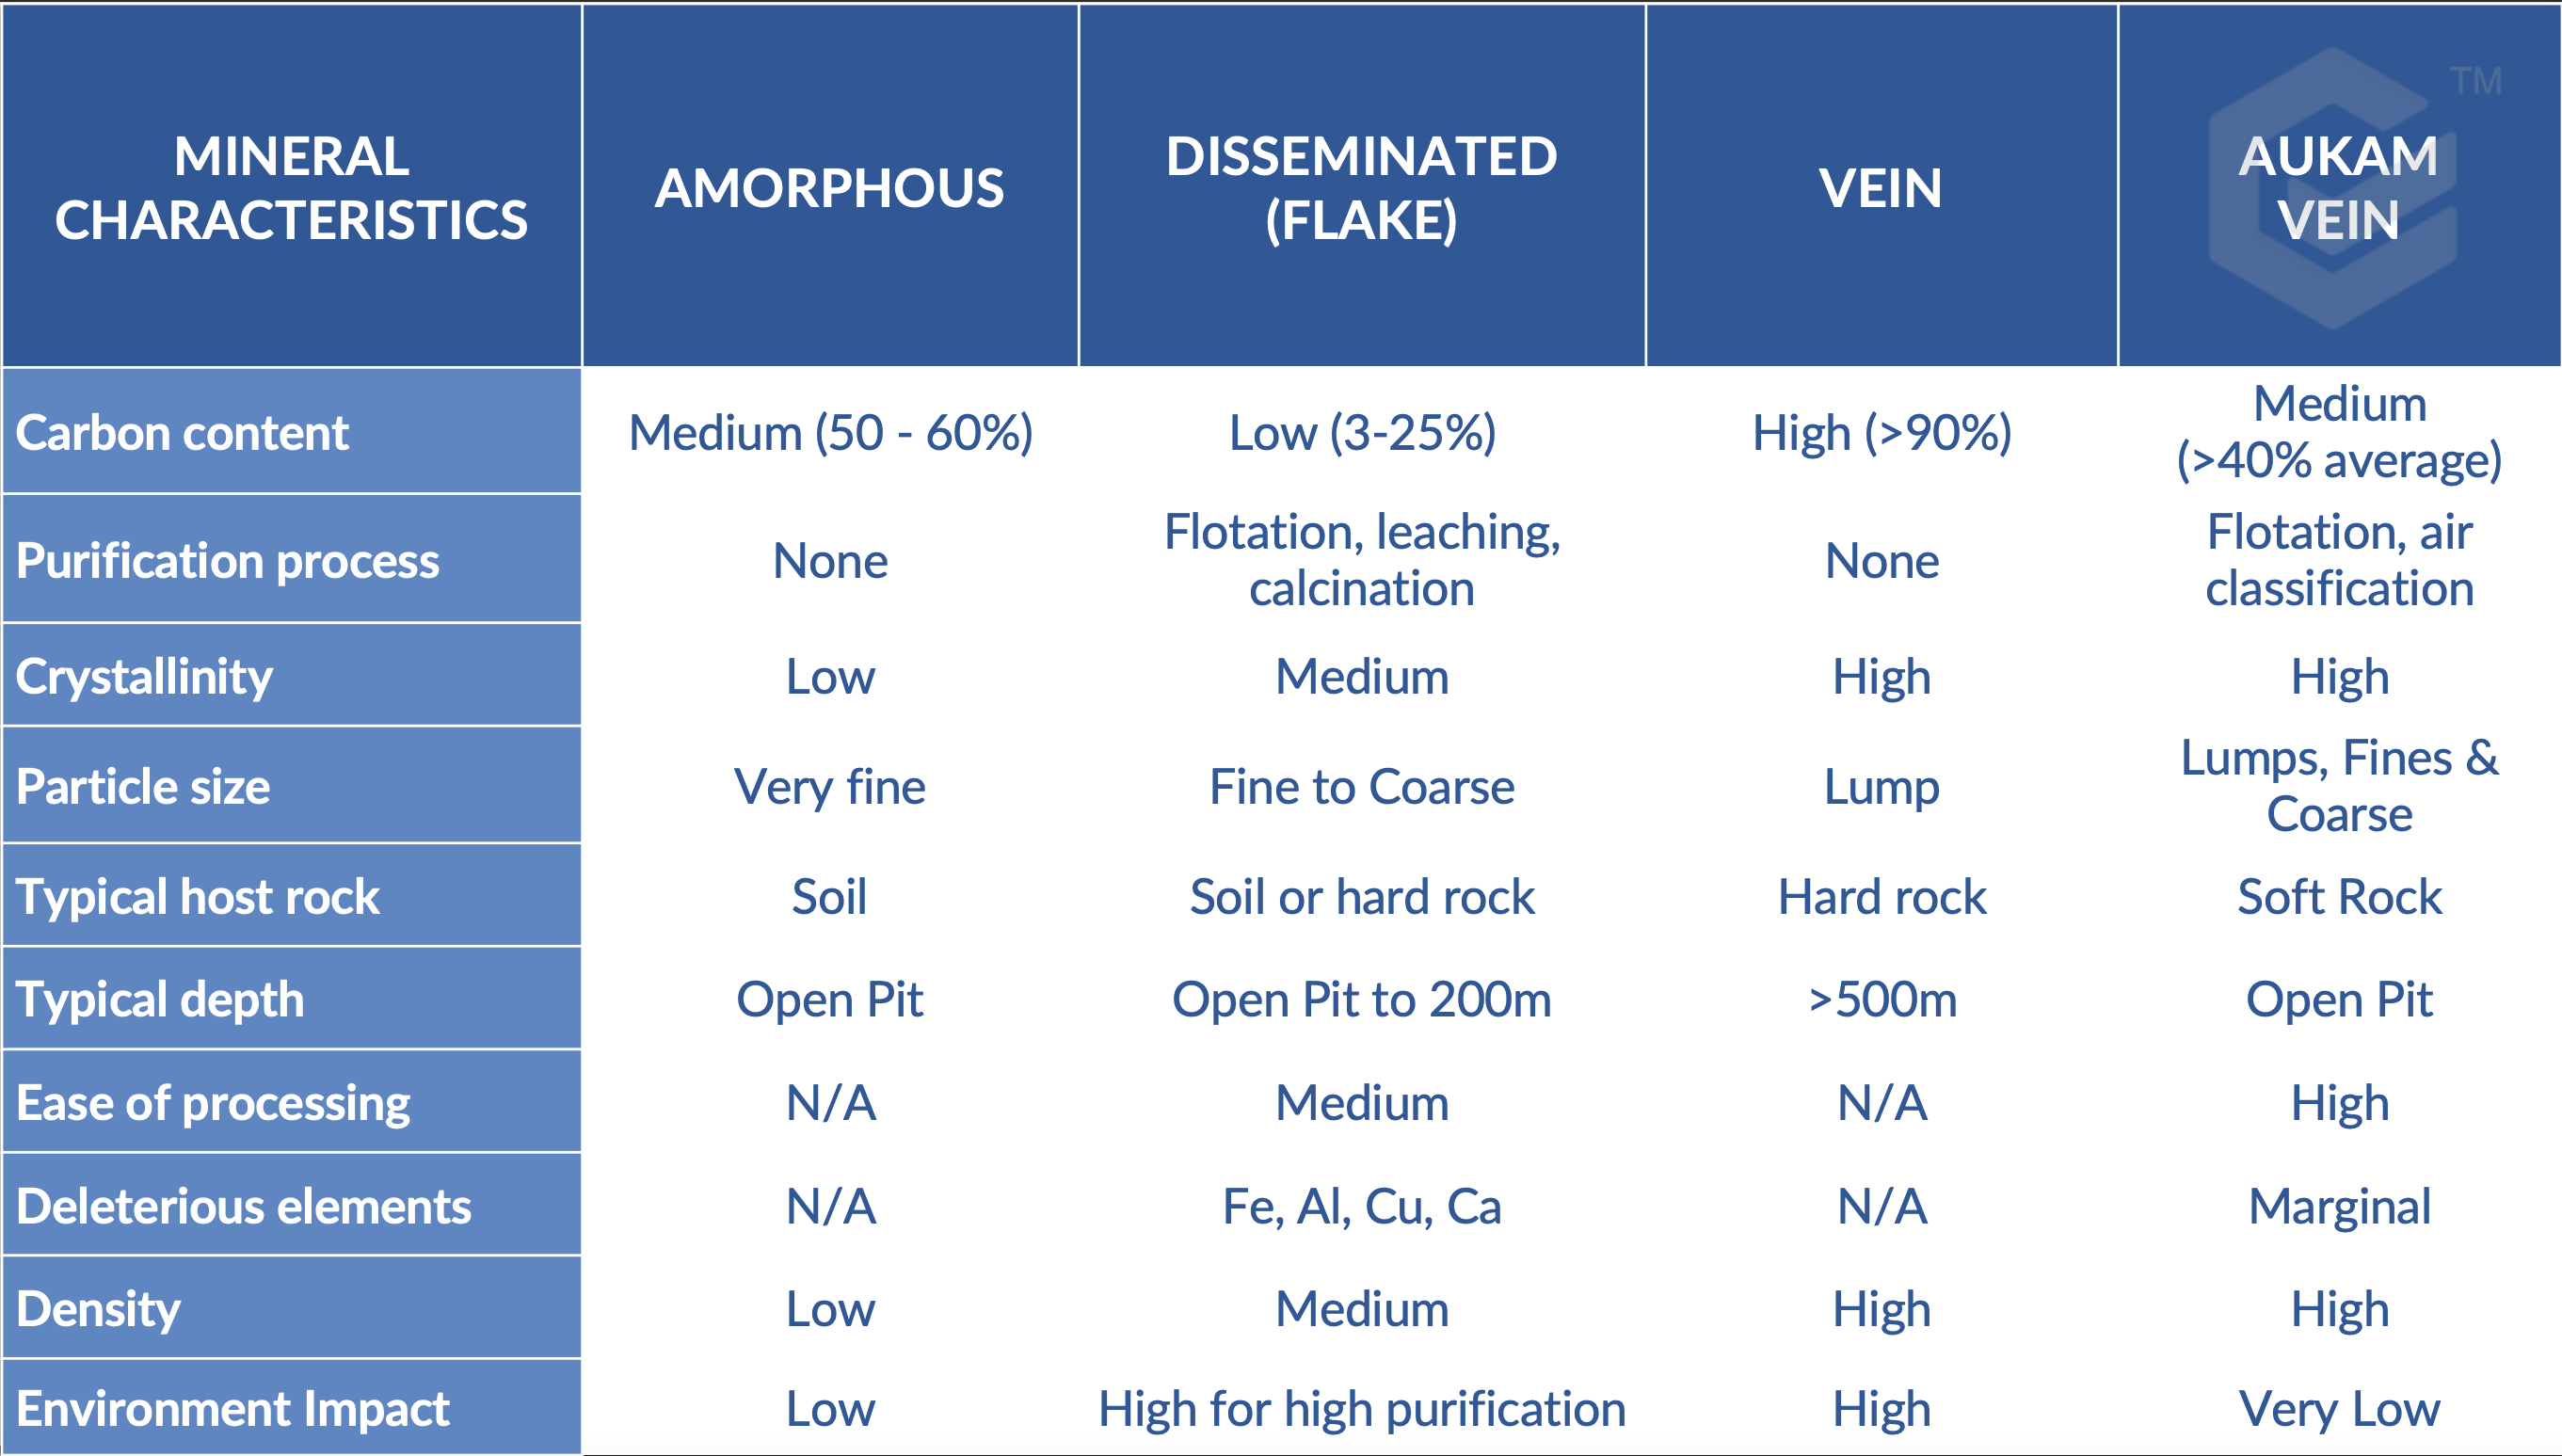 Natural vein, amorphous, and flake comparison for Aukam Vein Graphite project